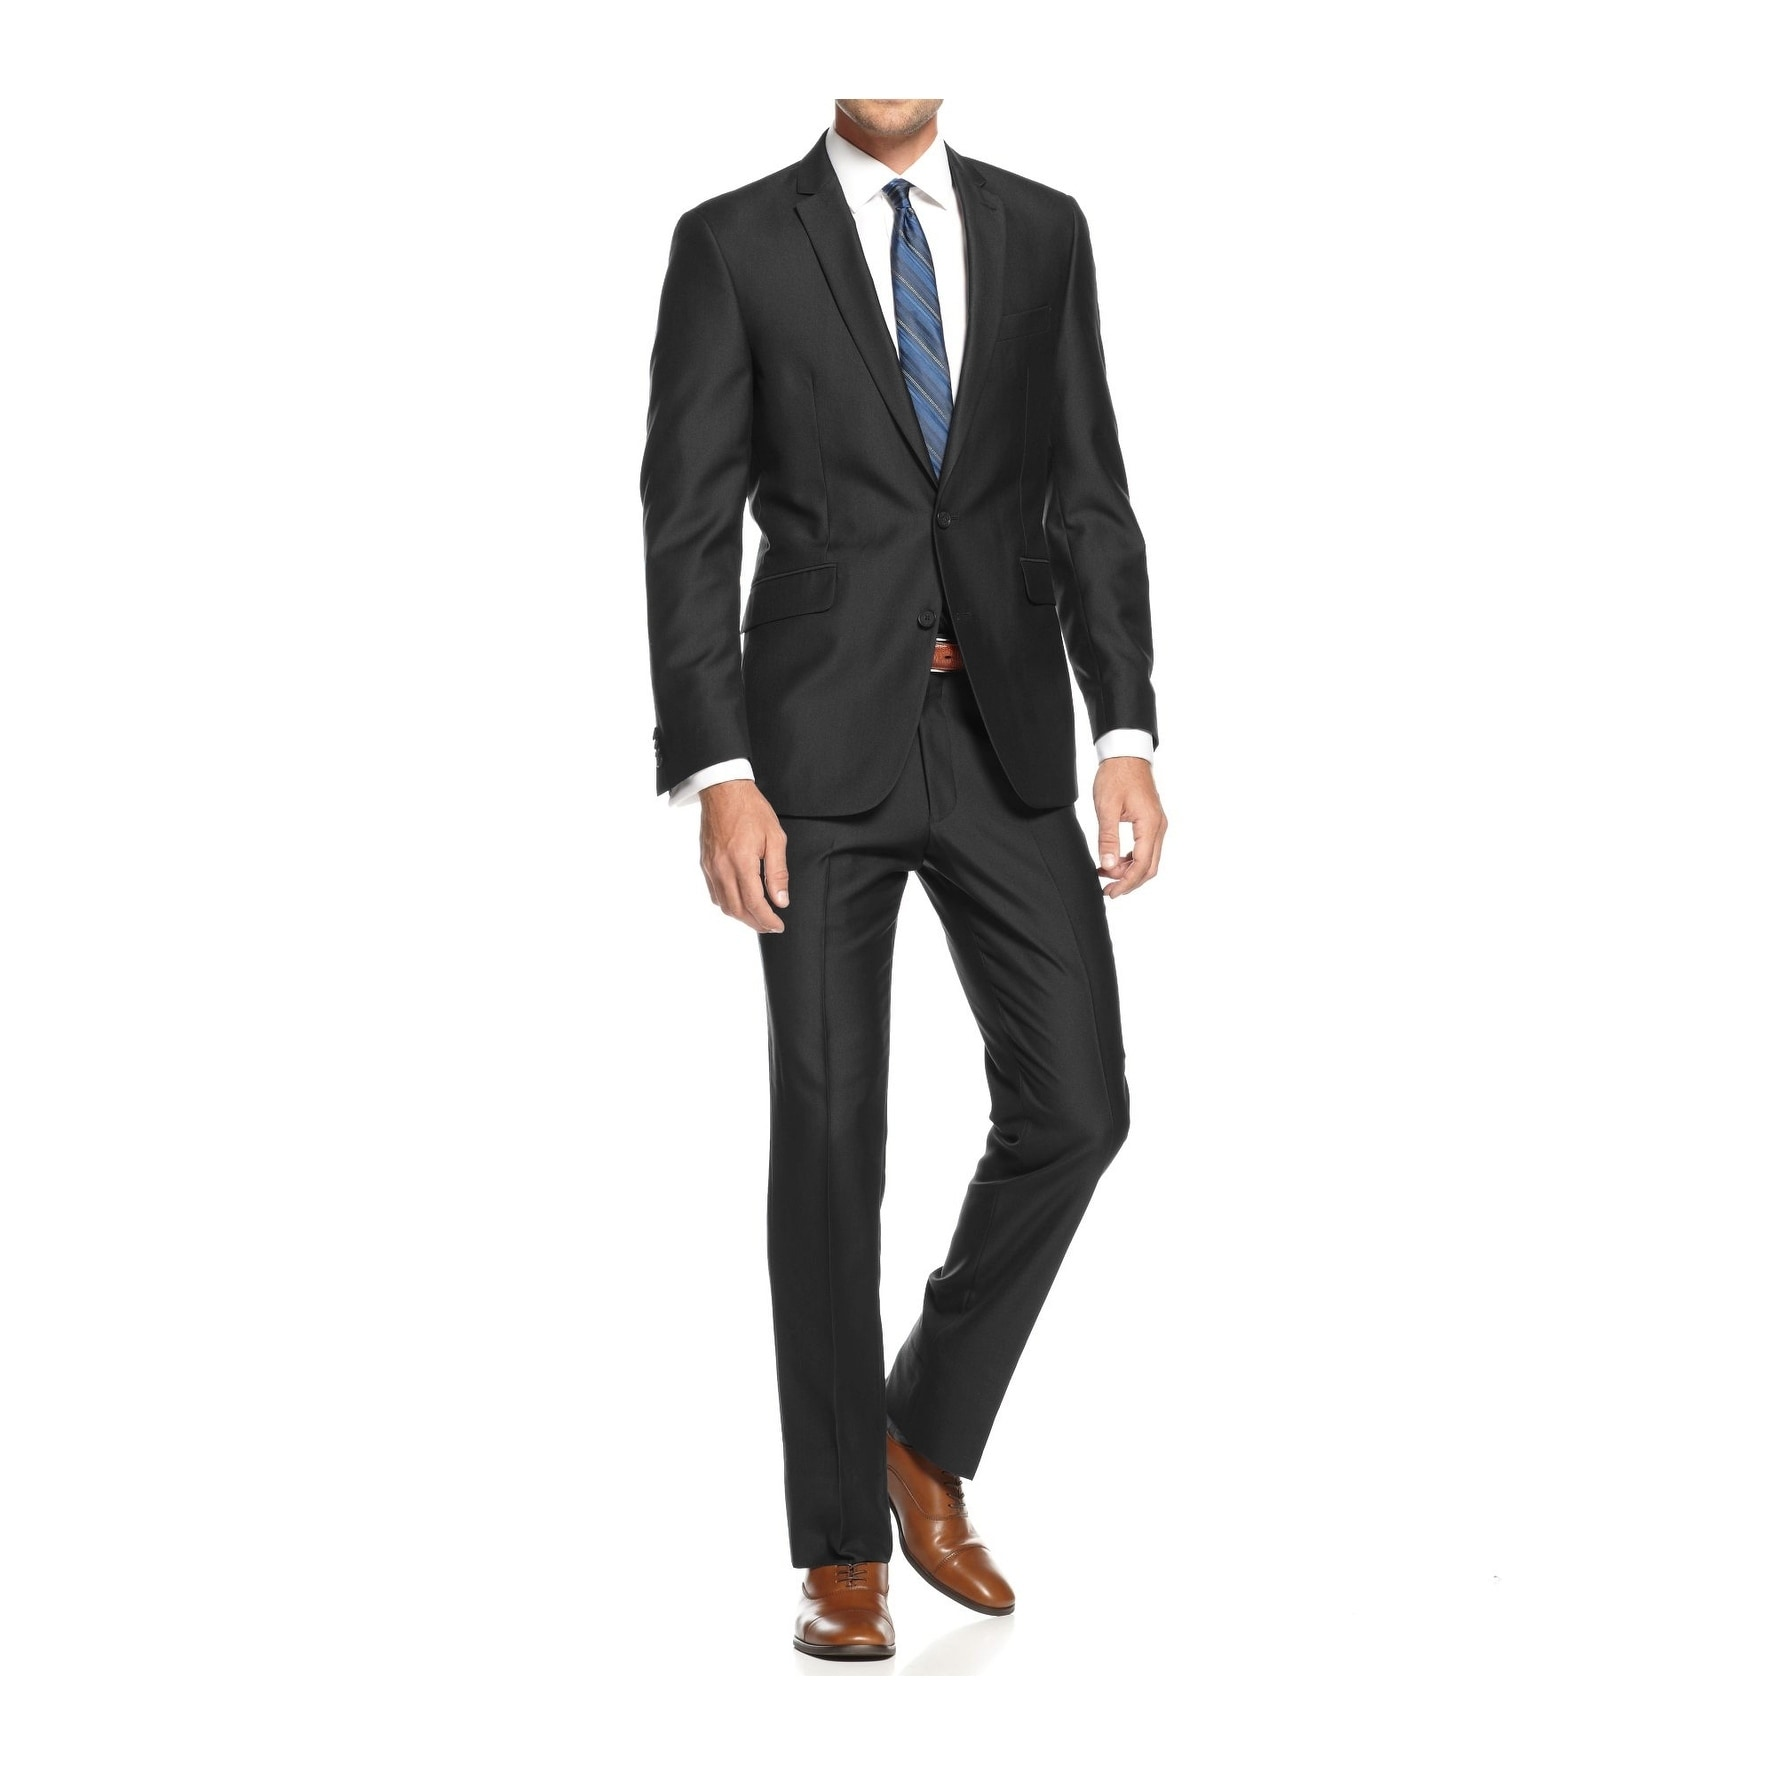 Braveman Men S Slim Fit 2 Piece Suit On Free Shipping Today 17432307